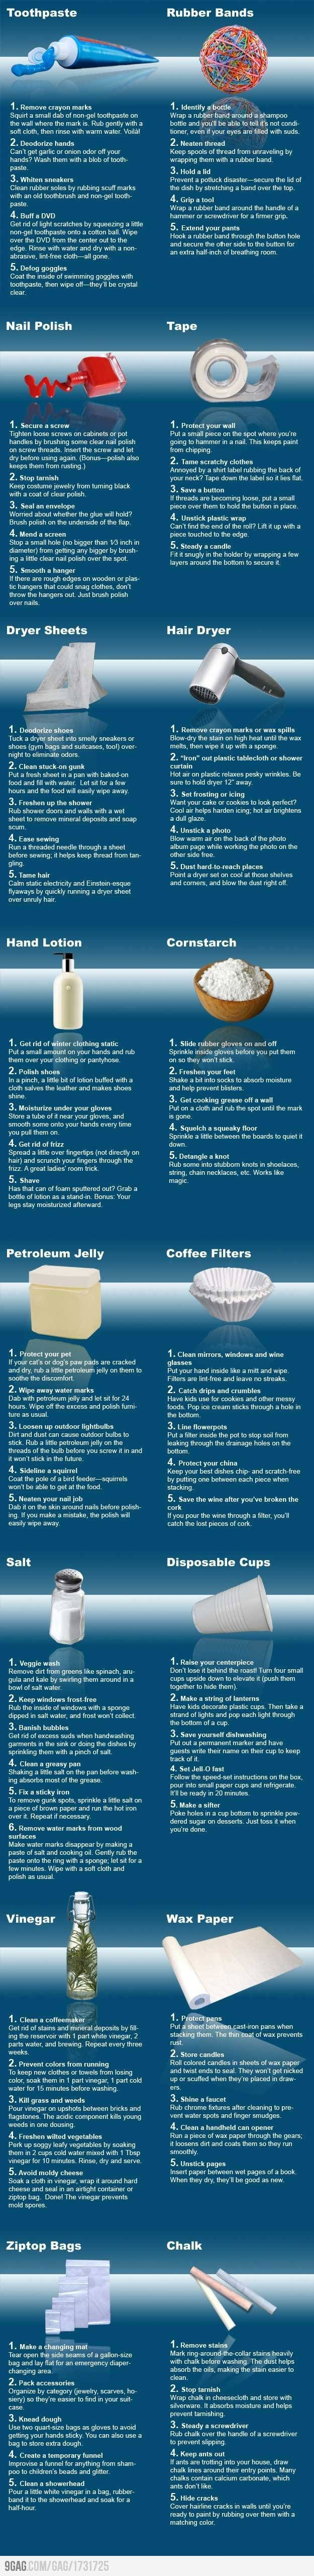 Very Useful Tips DIY Tips and Tricks for Petroleum Jelly Coffee Filters and many more items! Helpful Hints!